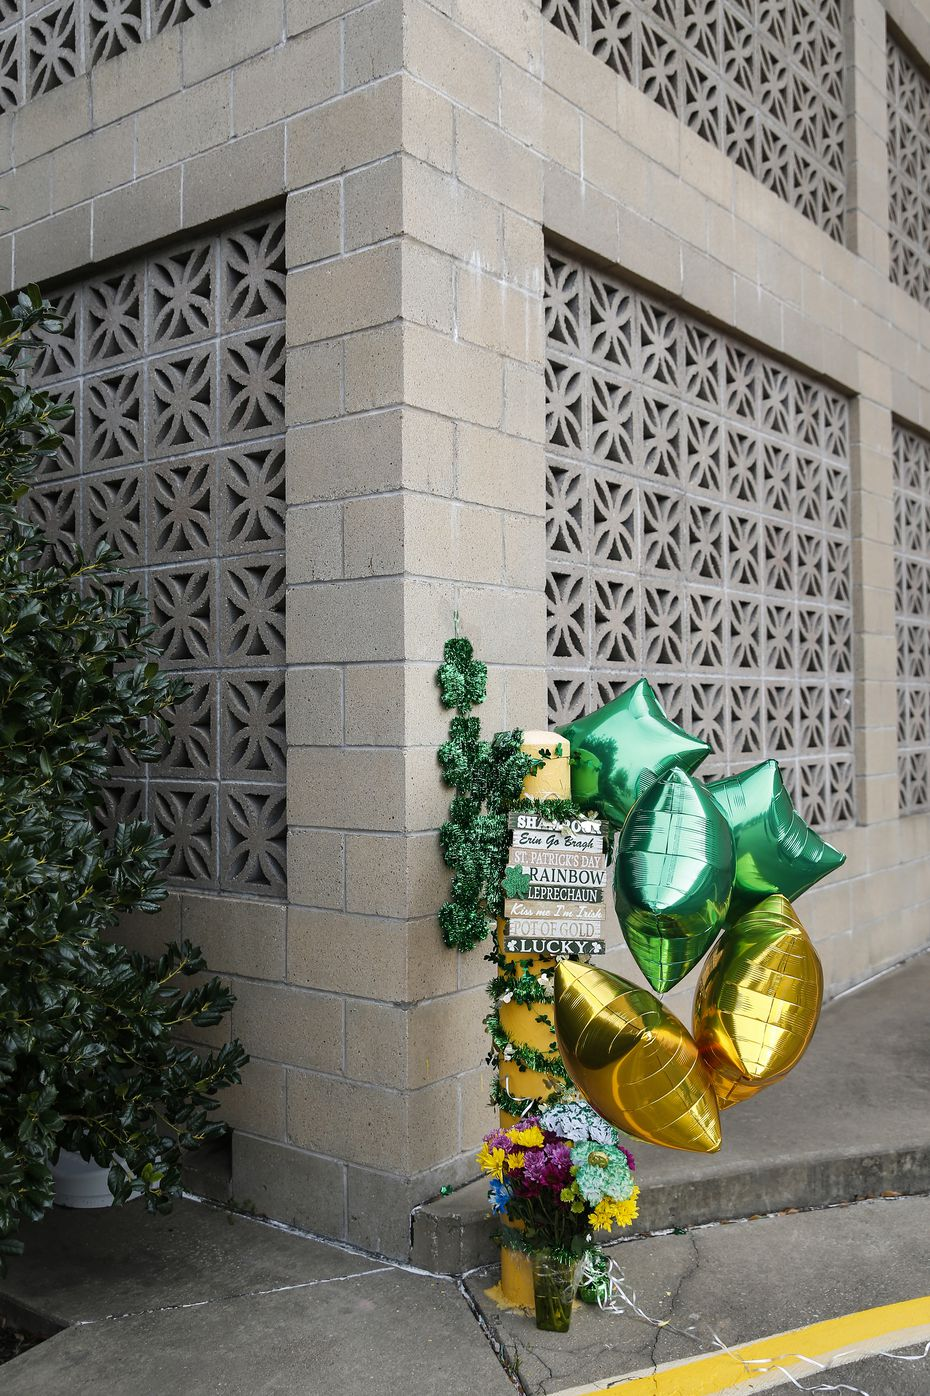 A memorial, decorated by Destiny Rangel, who was best friends with Emily Bingabing, who was killed outside a Walmart in Far North Dallas in late January, decorates a memorial near the location of the homicide on Saturday, Feb. 22, 2020 in Dallas. Rangel says they plan to continue decorating the location once a month. (Ryan Michalesko/The Dallas Morning News)